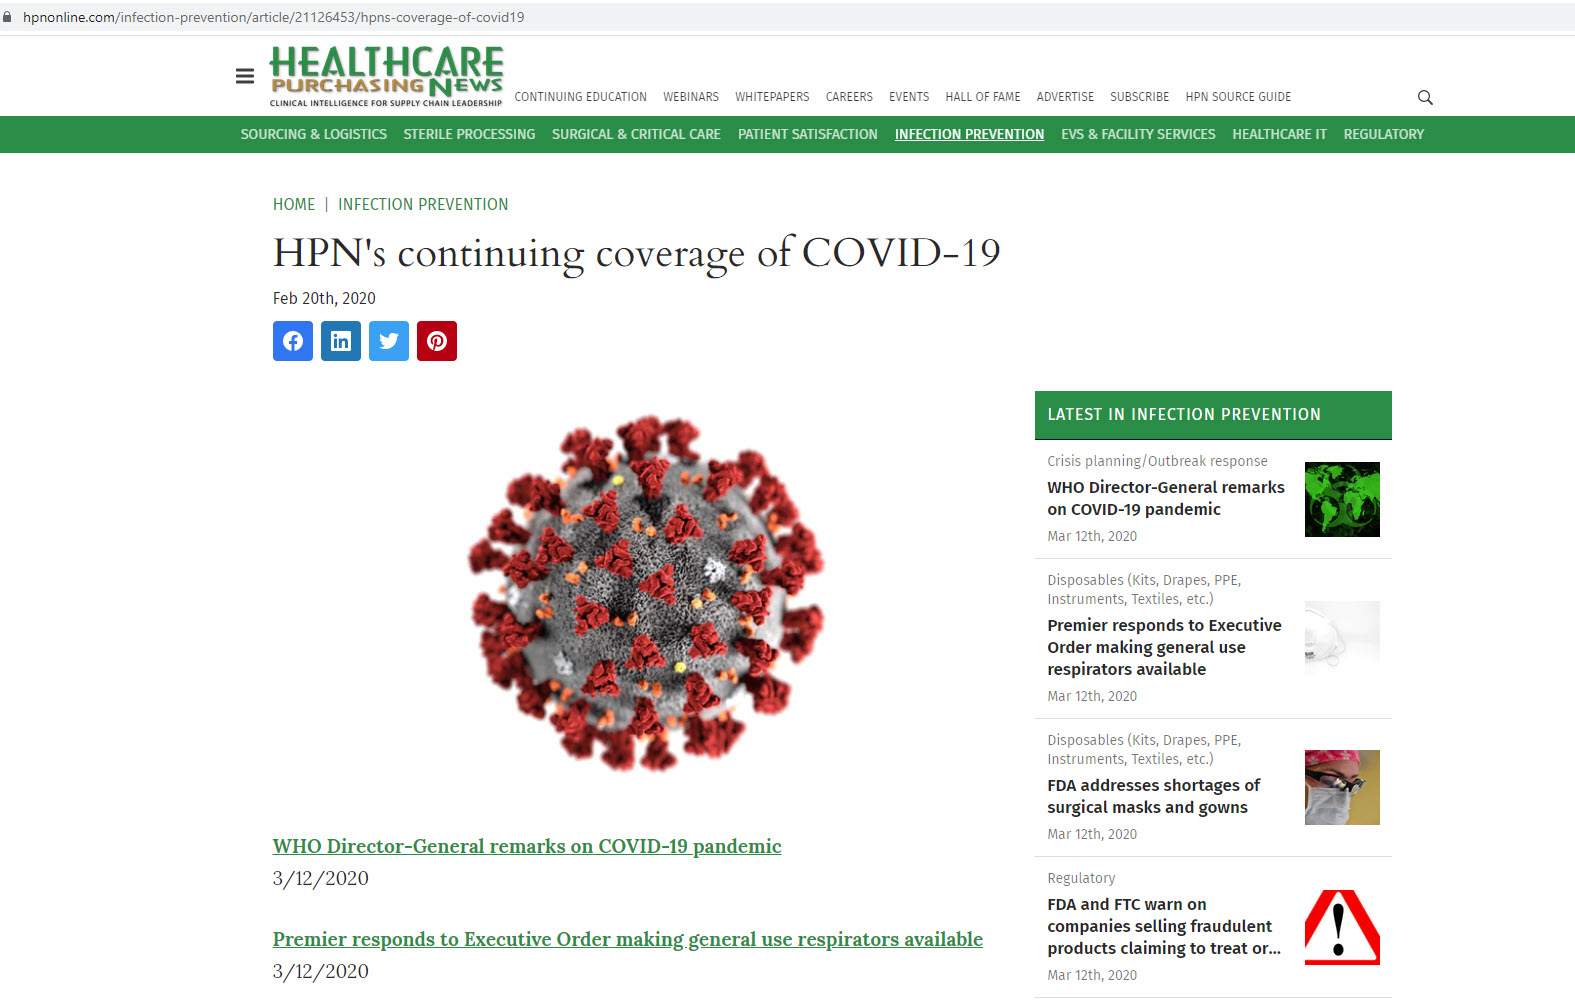 HPN's Continuing Coverage of COVID-19